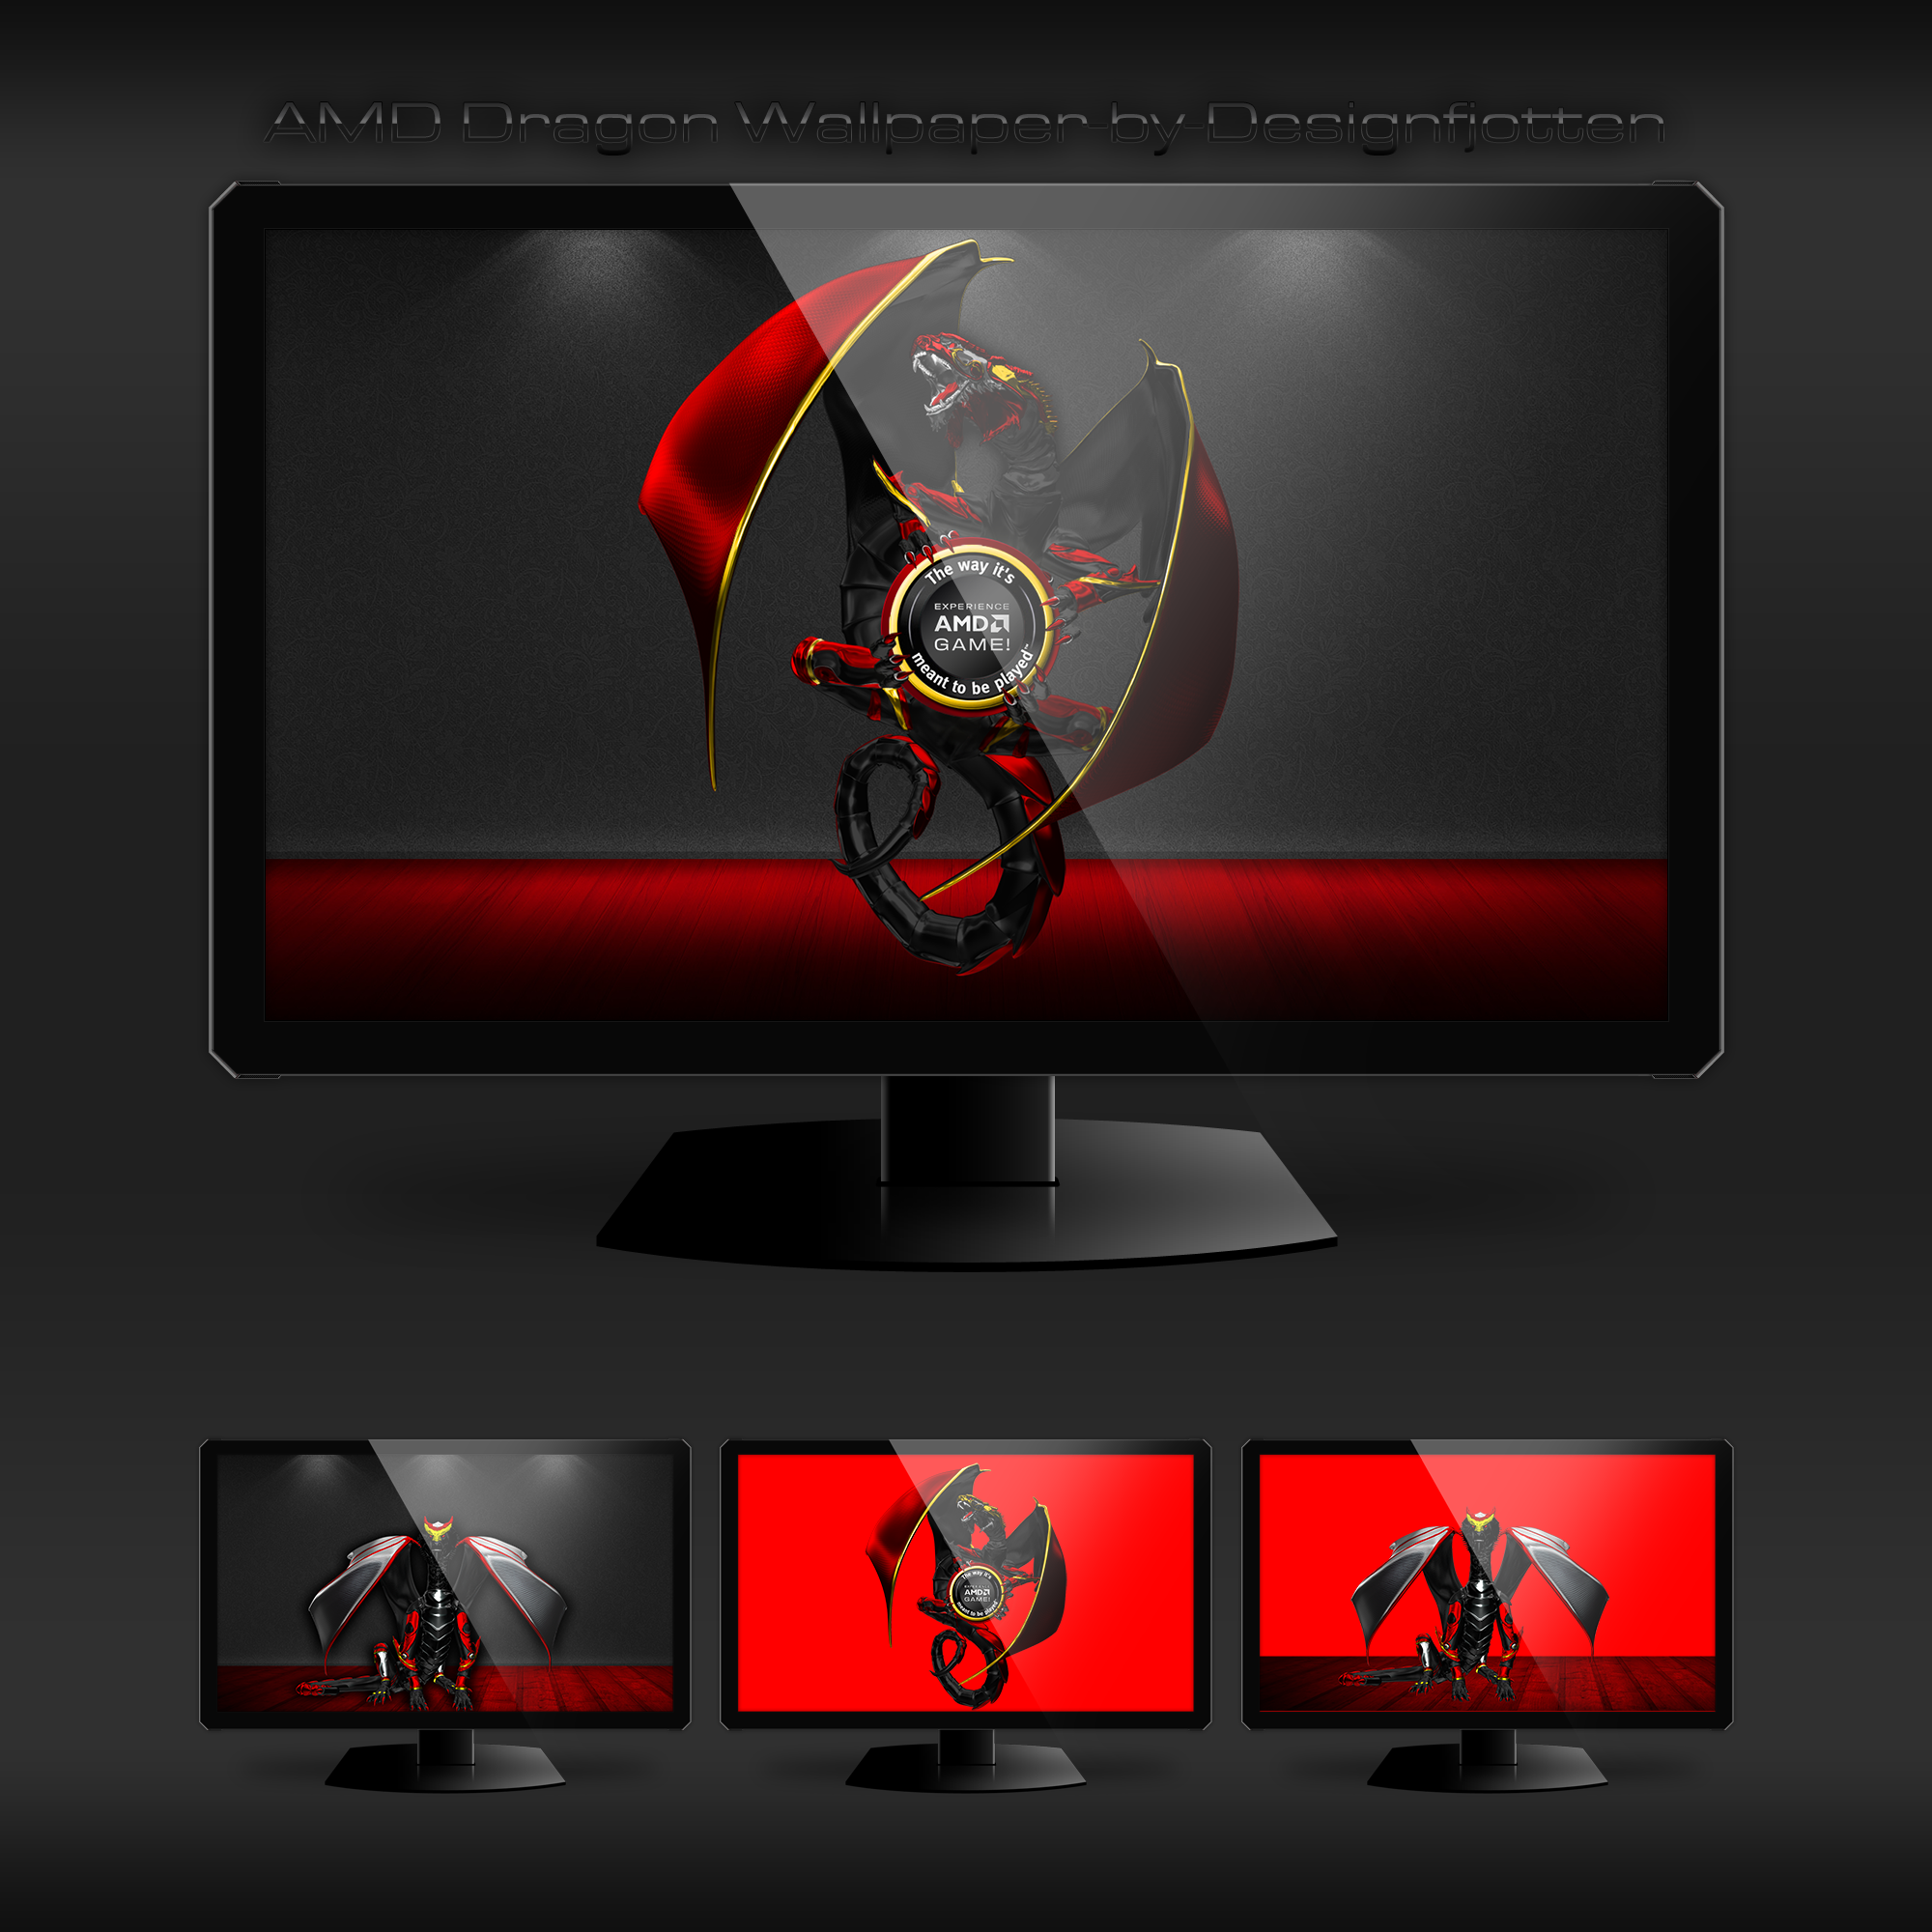 download amd dragon wallpapers - photo #25